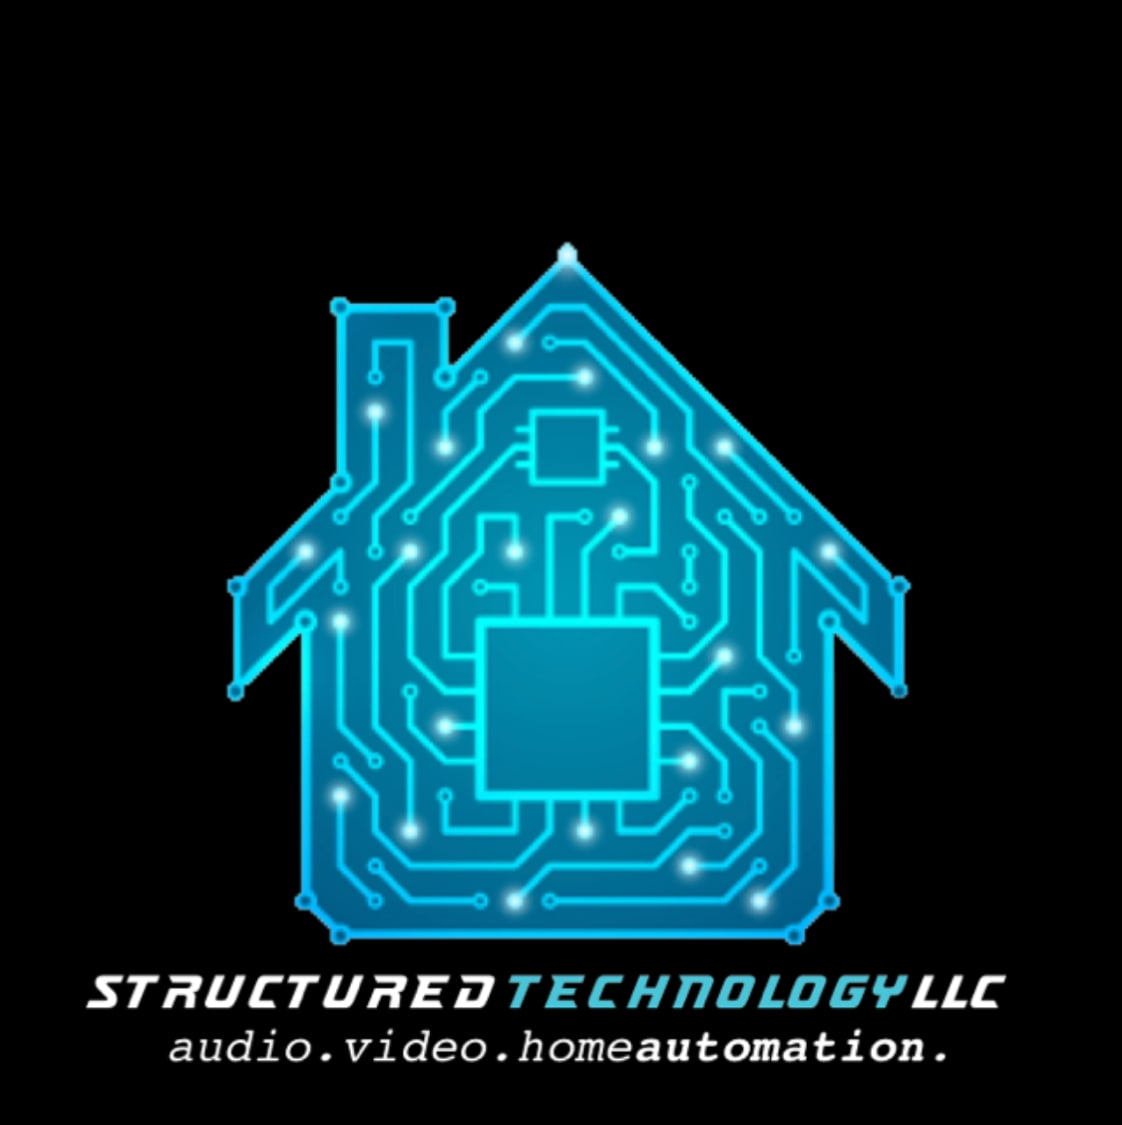 Structured Technology LLC